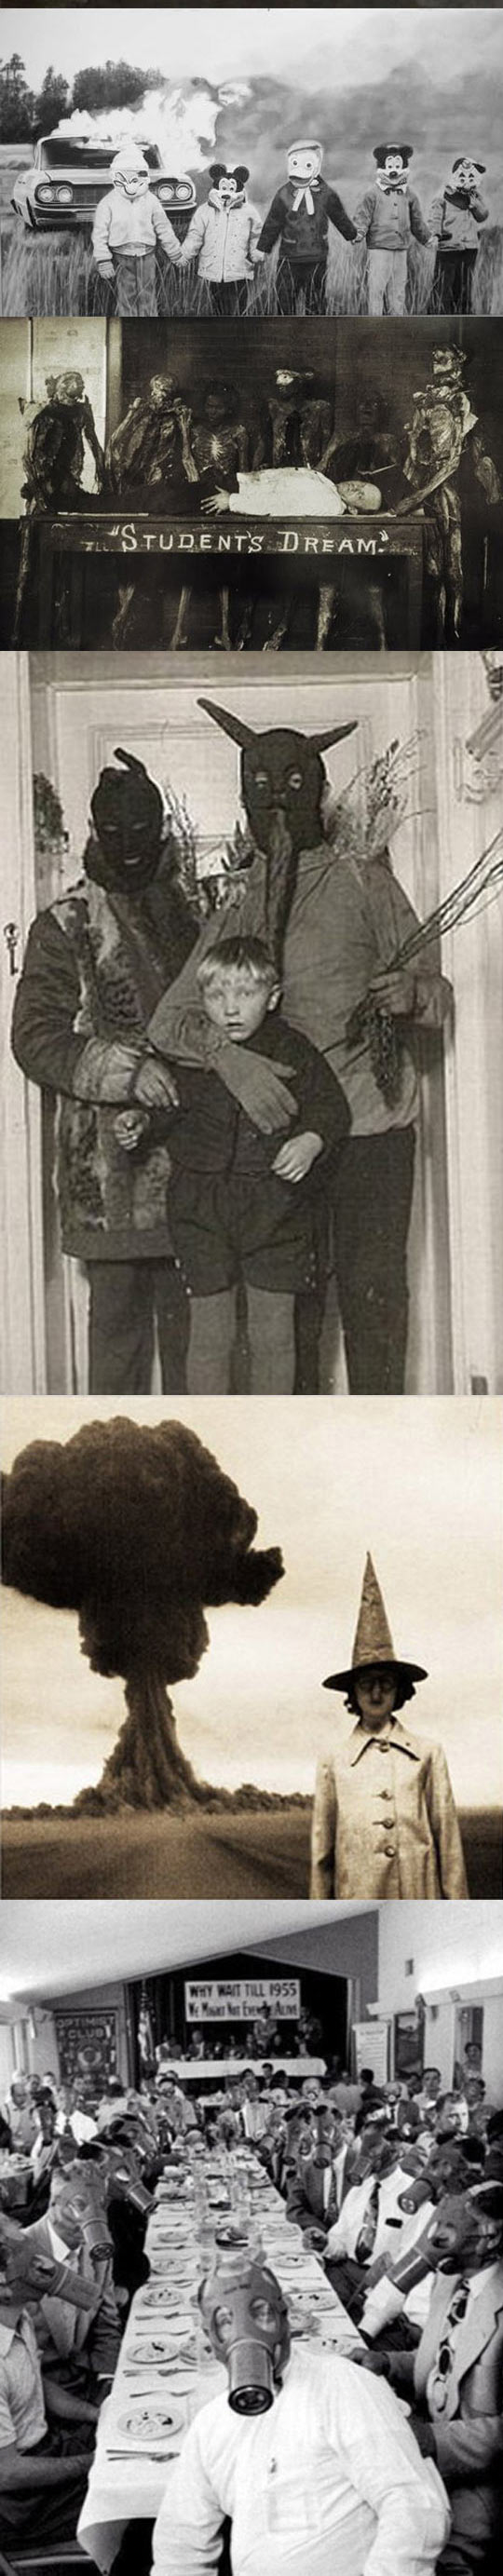 funny-creepy-old-pictures-black-white-disguise